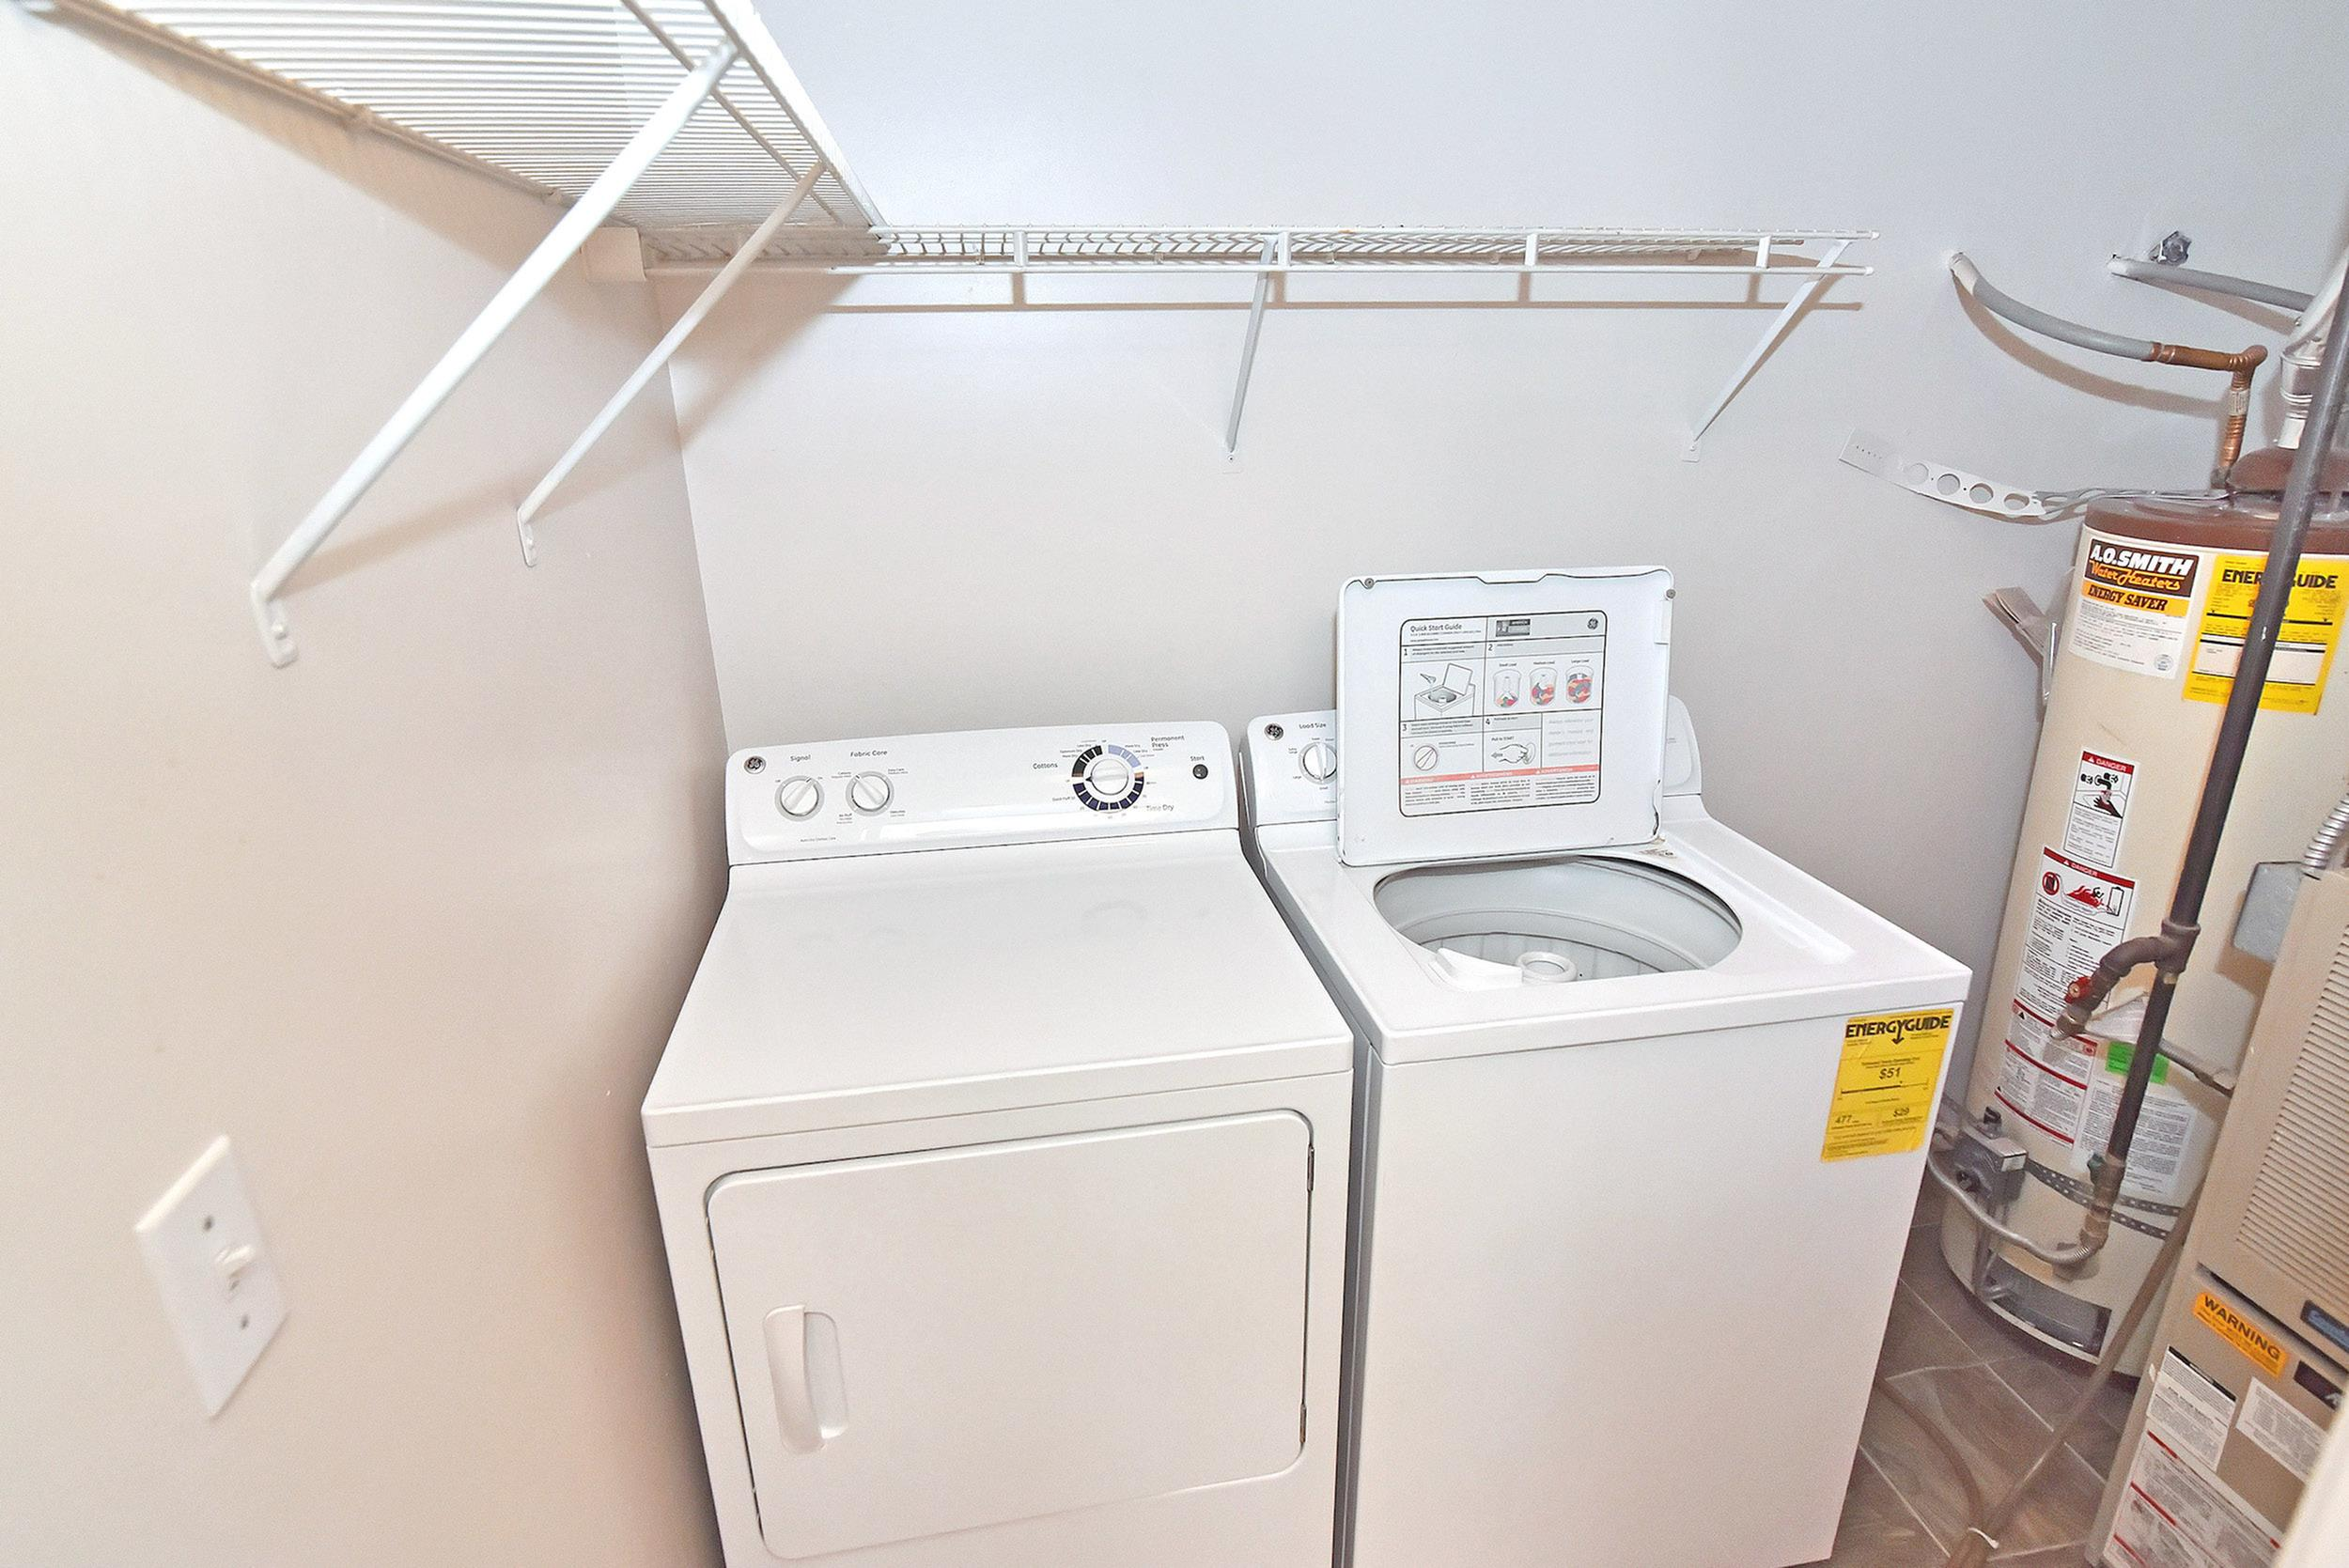 Washer and Dryer at Edgewood Apartments in Cottonwood Heights, UT